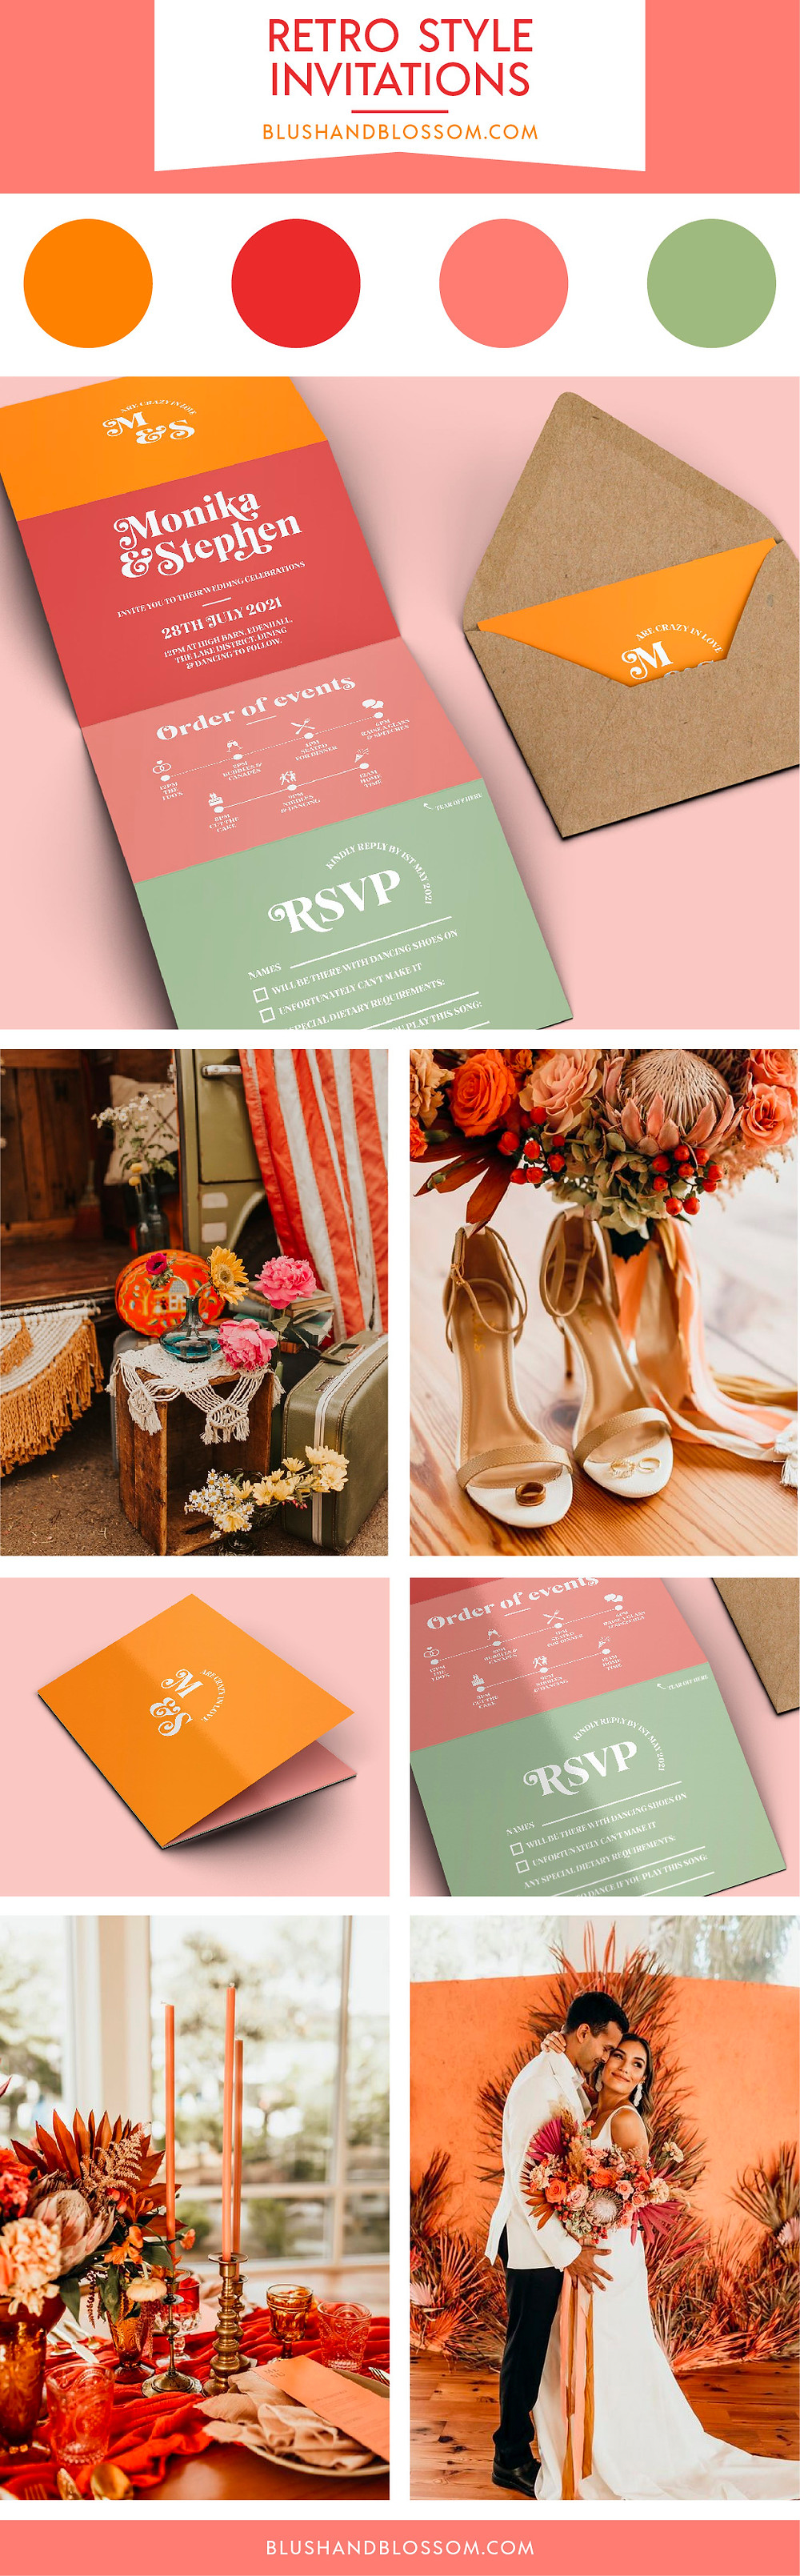 70s style is boogying it's way back into the wedding scene. Inspired by the vibrant 1970s, this wedding stationery collection is bold, fun and optimistic.